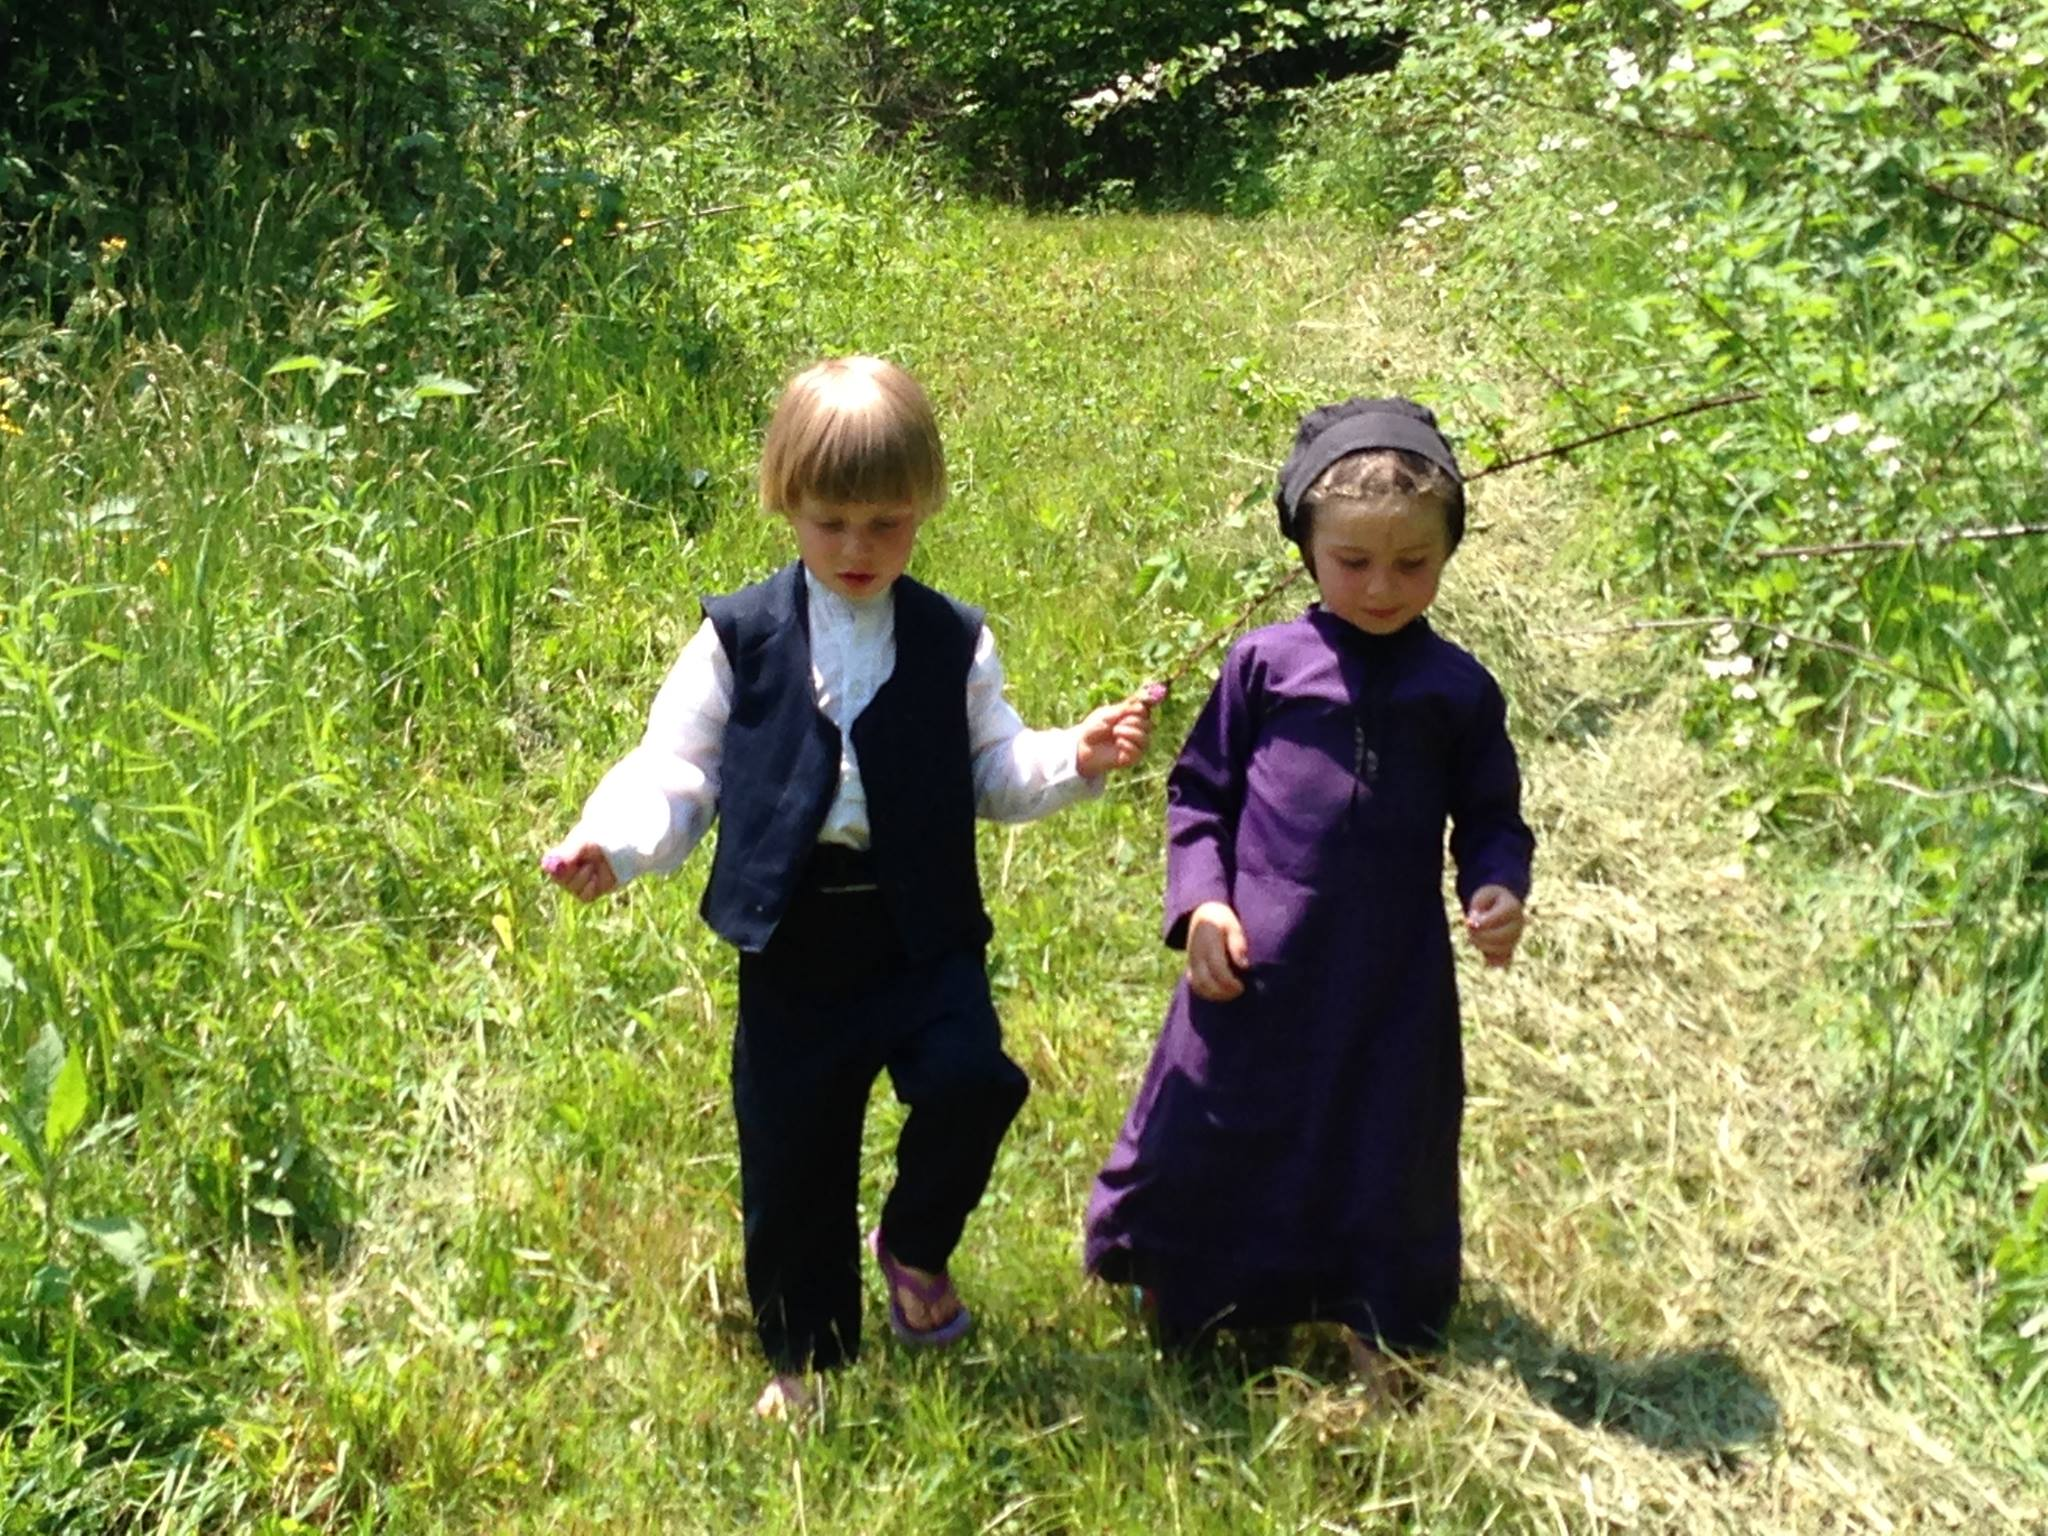 Walking through the woods at West Salem Amish Mission